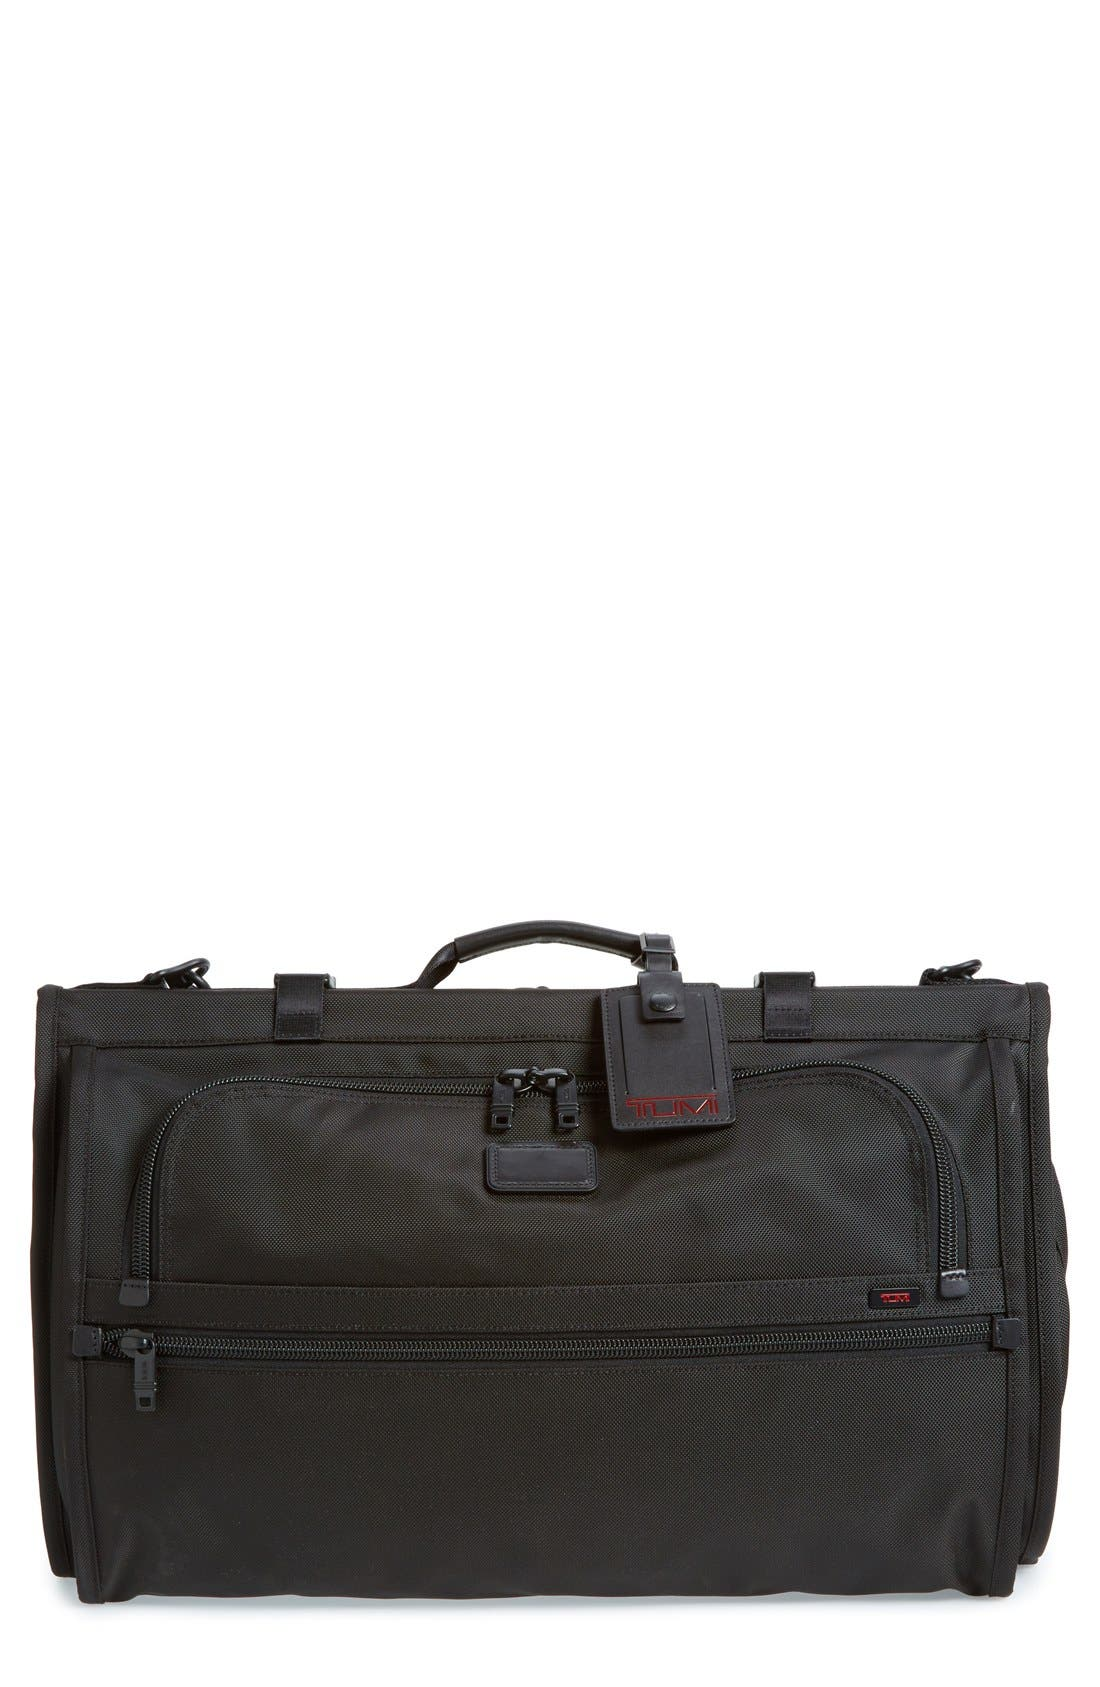 Main Image - Tumi 'Alpha 2' Trifold Carry-On Garment Bag (22 Inch)